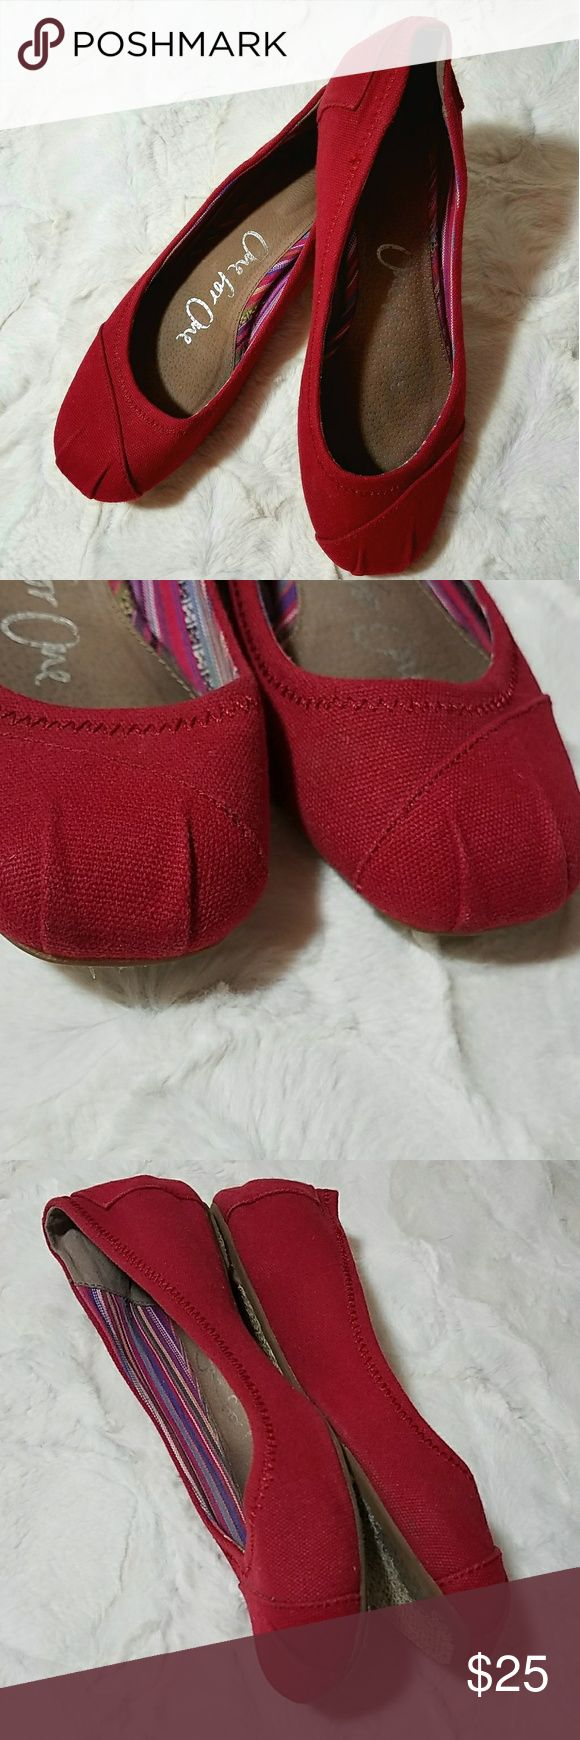 Toms red ballet flats Lighty worn toms ballet flats, only worn a couple of times! Outsides of shoes in almost perfect condition! Super comfy & adorable. Toms Shoes Flats & Loafers